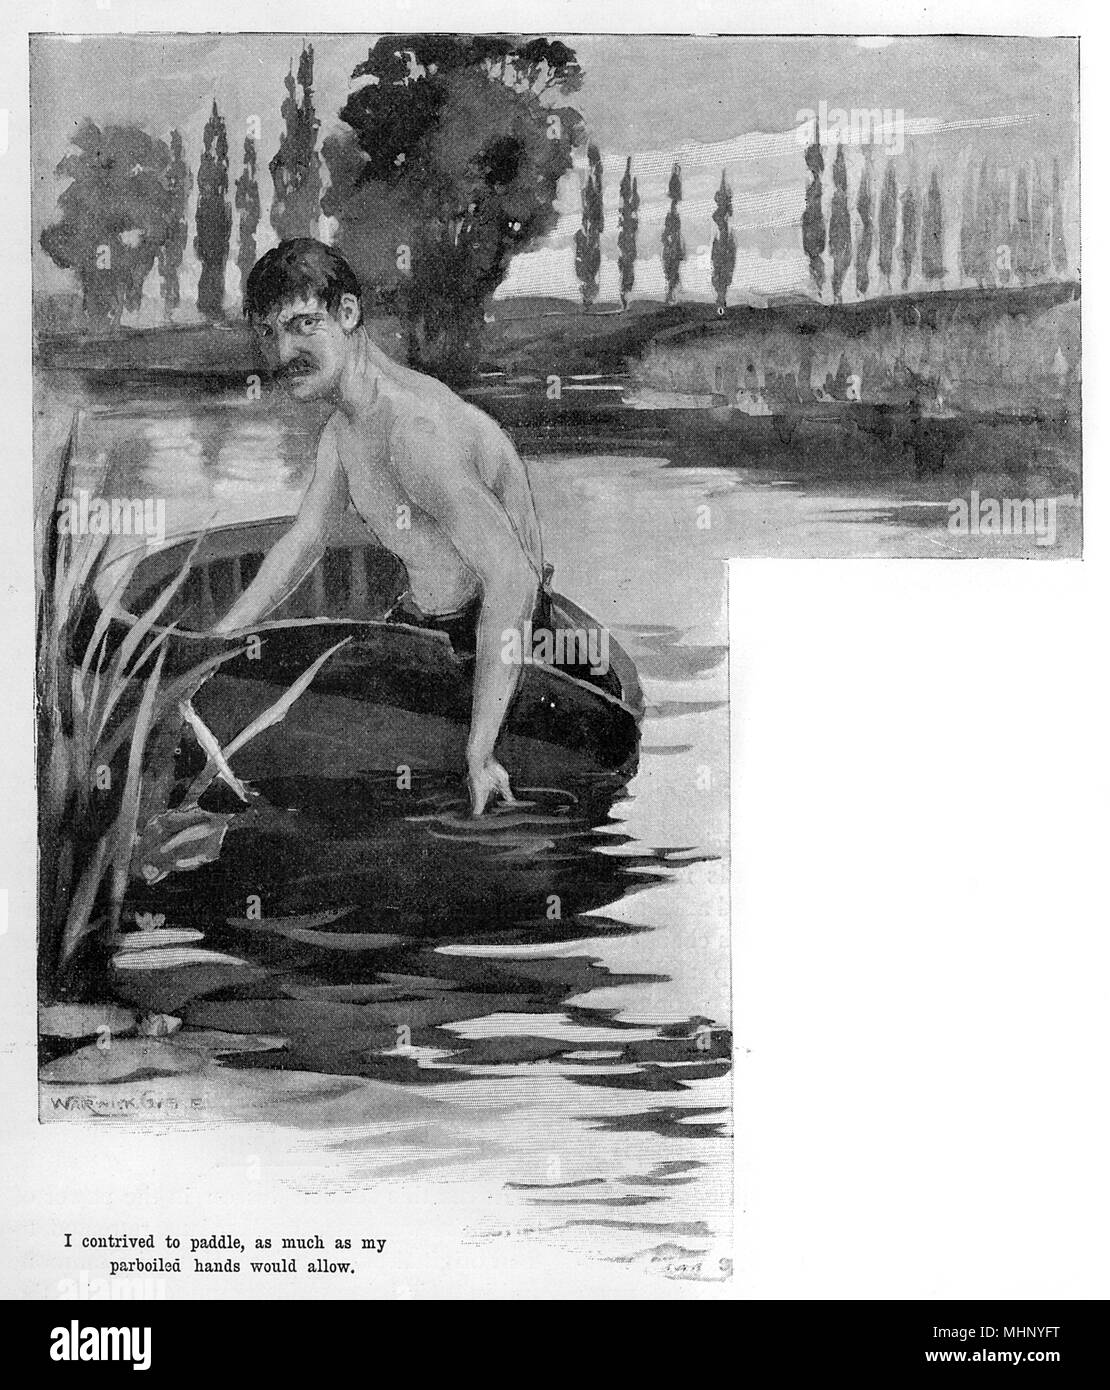 The narrator escaping by paddling away in an abandoned boat. The War of the Worlds is a science fiction novel by English author H. G. Wells (1866-1946). This plate comes from the first serialised version, published in 1897 by Pearson's Magazine in the UK.     Date: 1897 - Stock Image